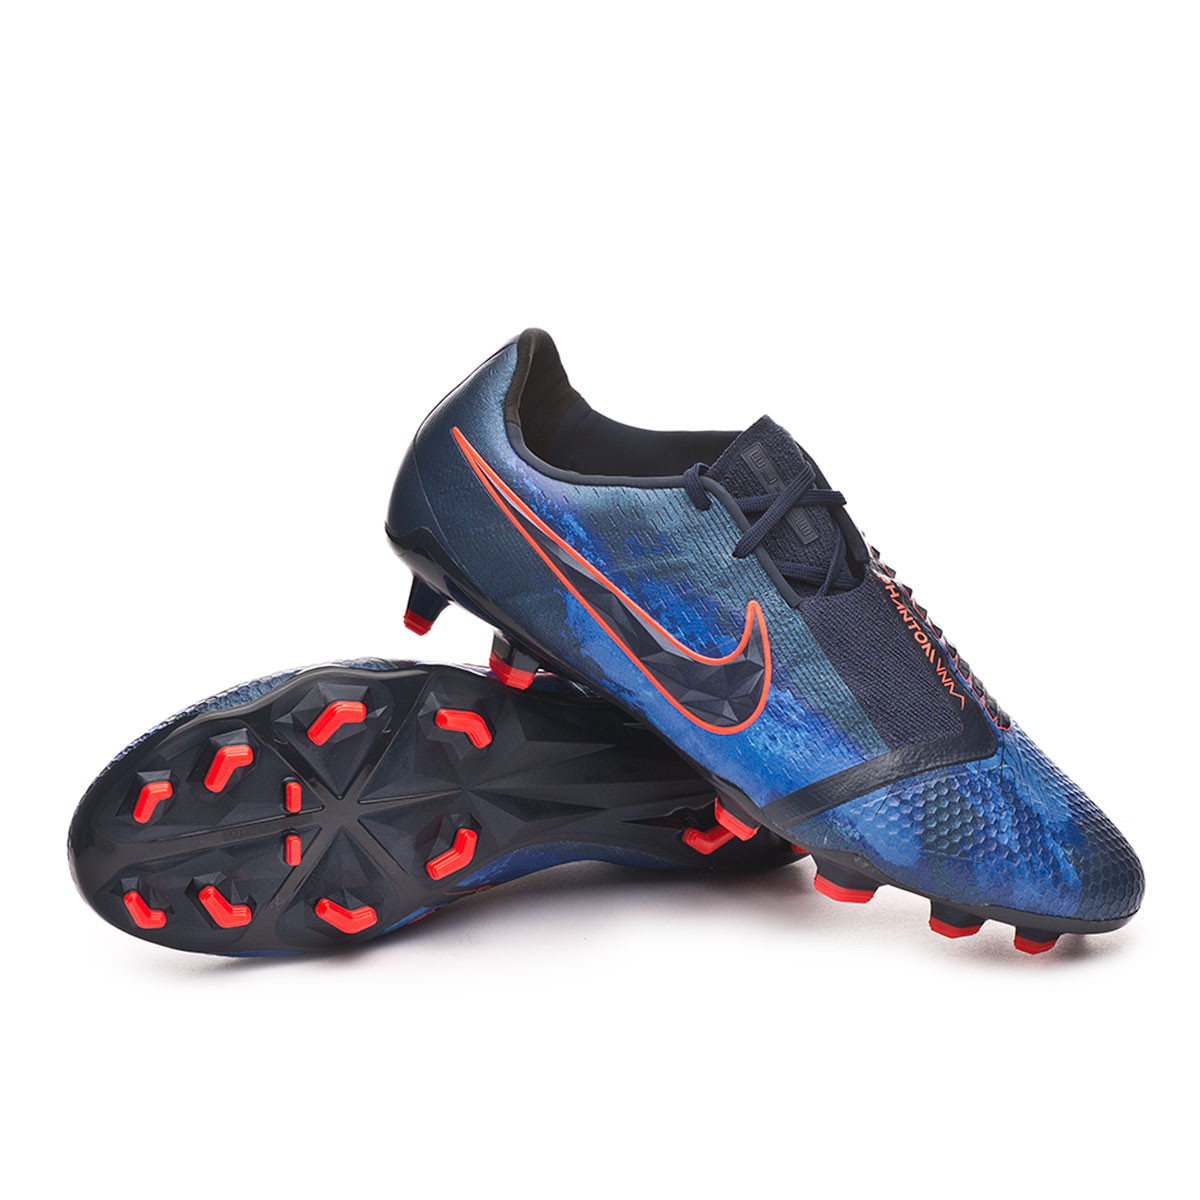 new arrival 51083 98c00 Bota Phantom Venom Elite FG Obsidian-White-Black-Racer blue